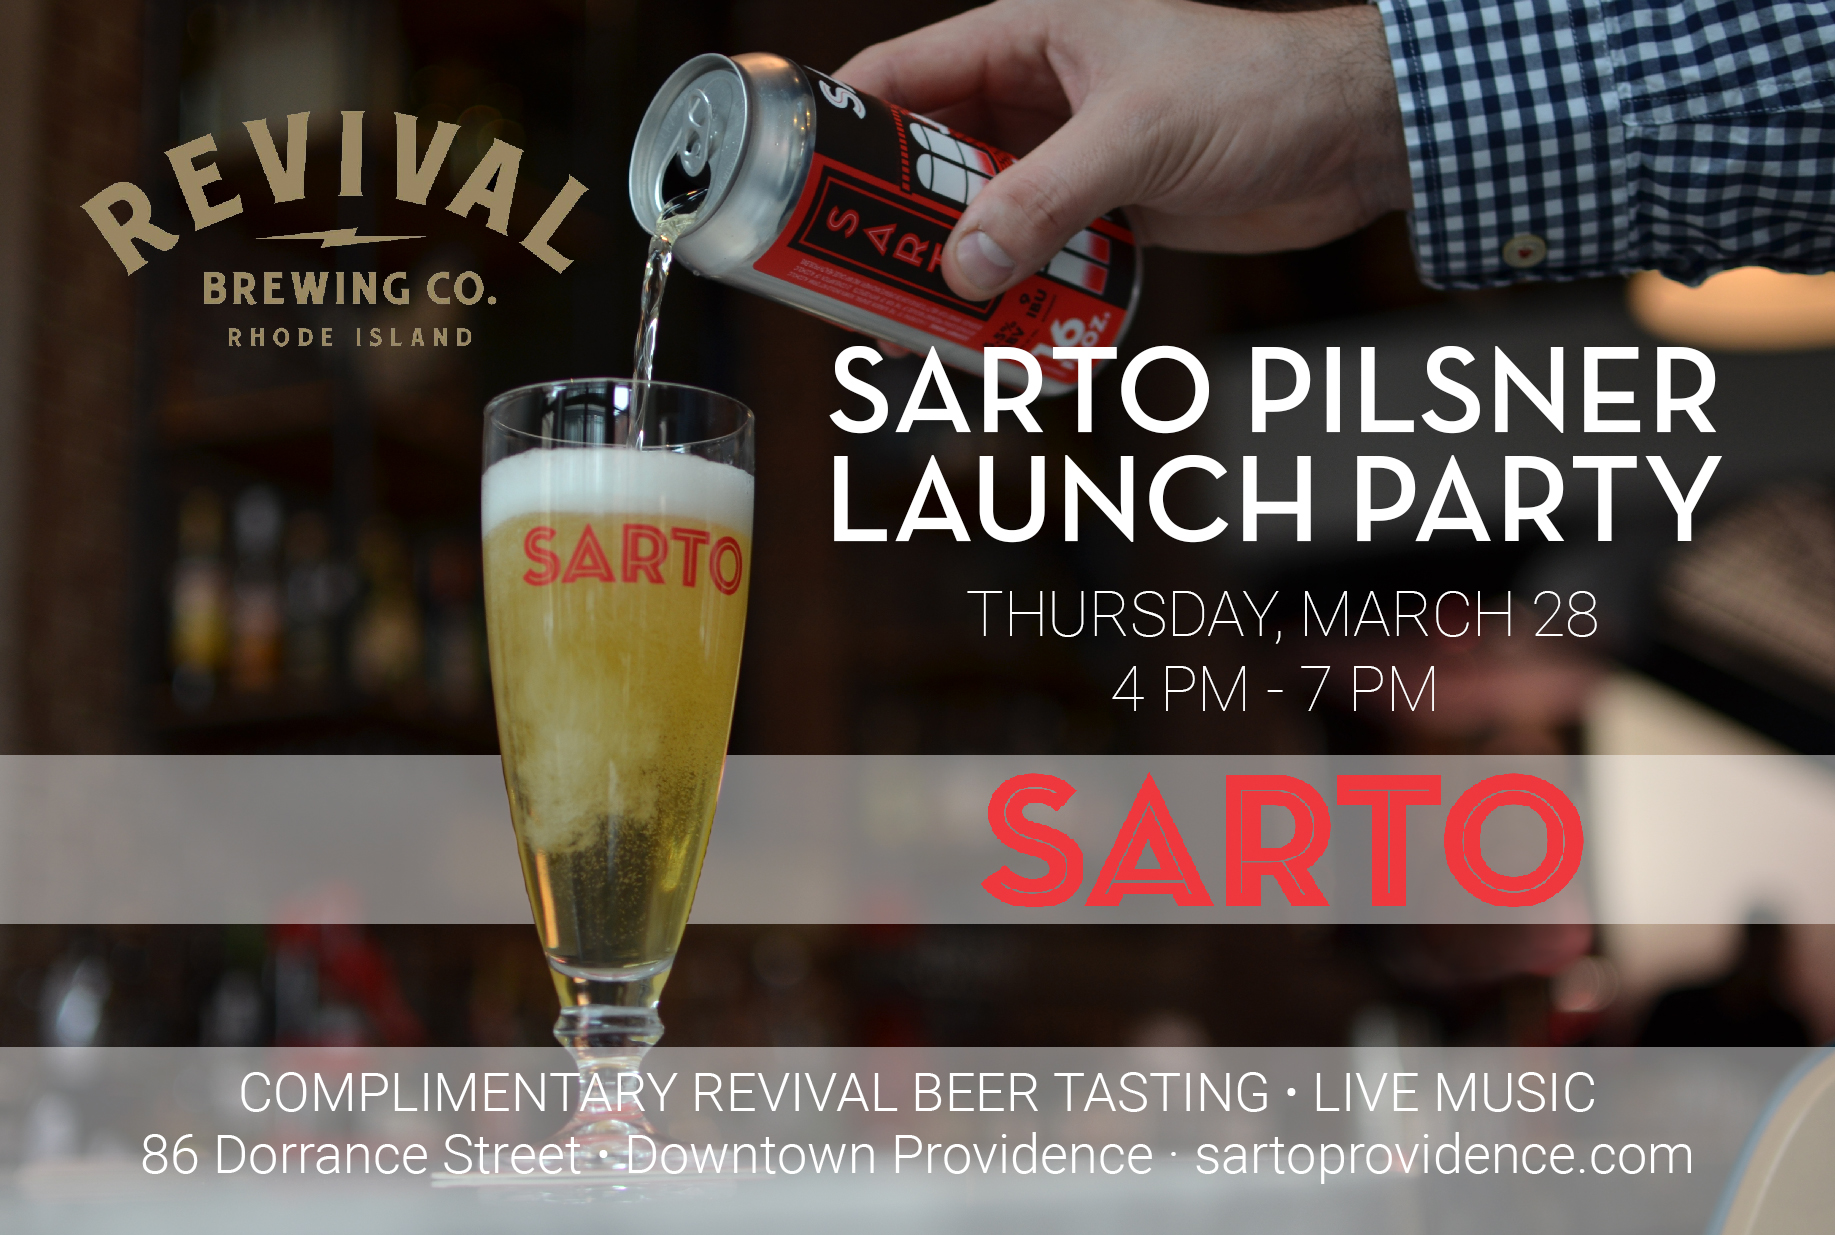 March 28, 2019: Sarto Pilsner Launch Party